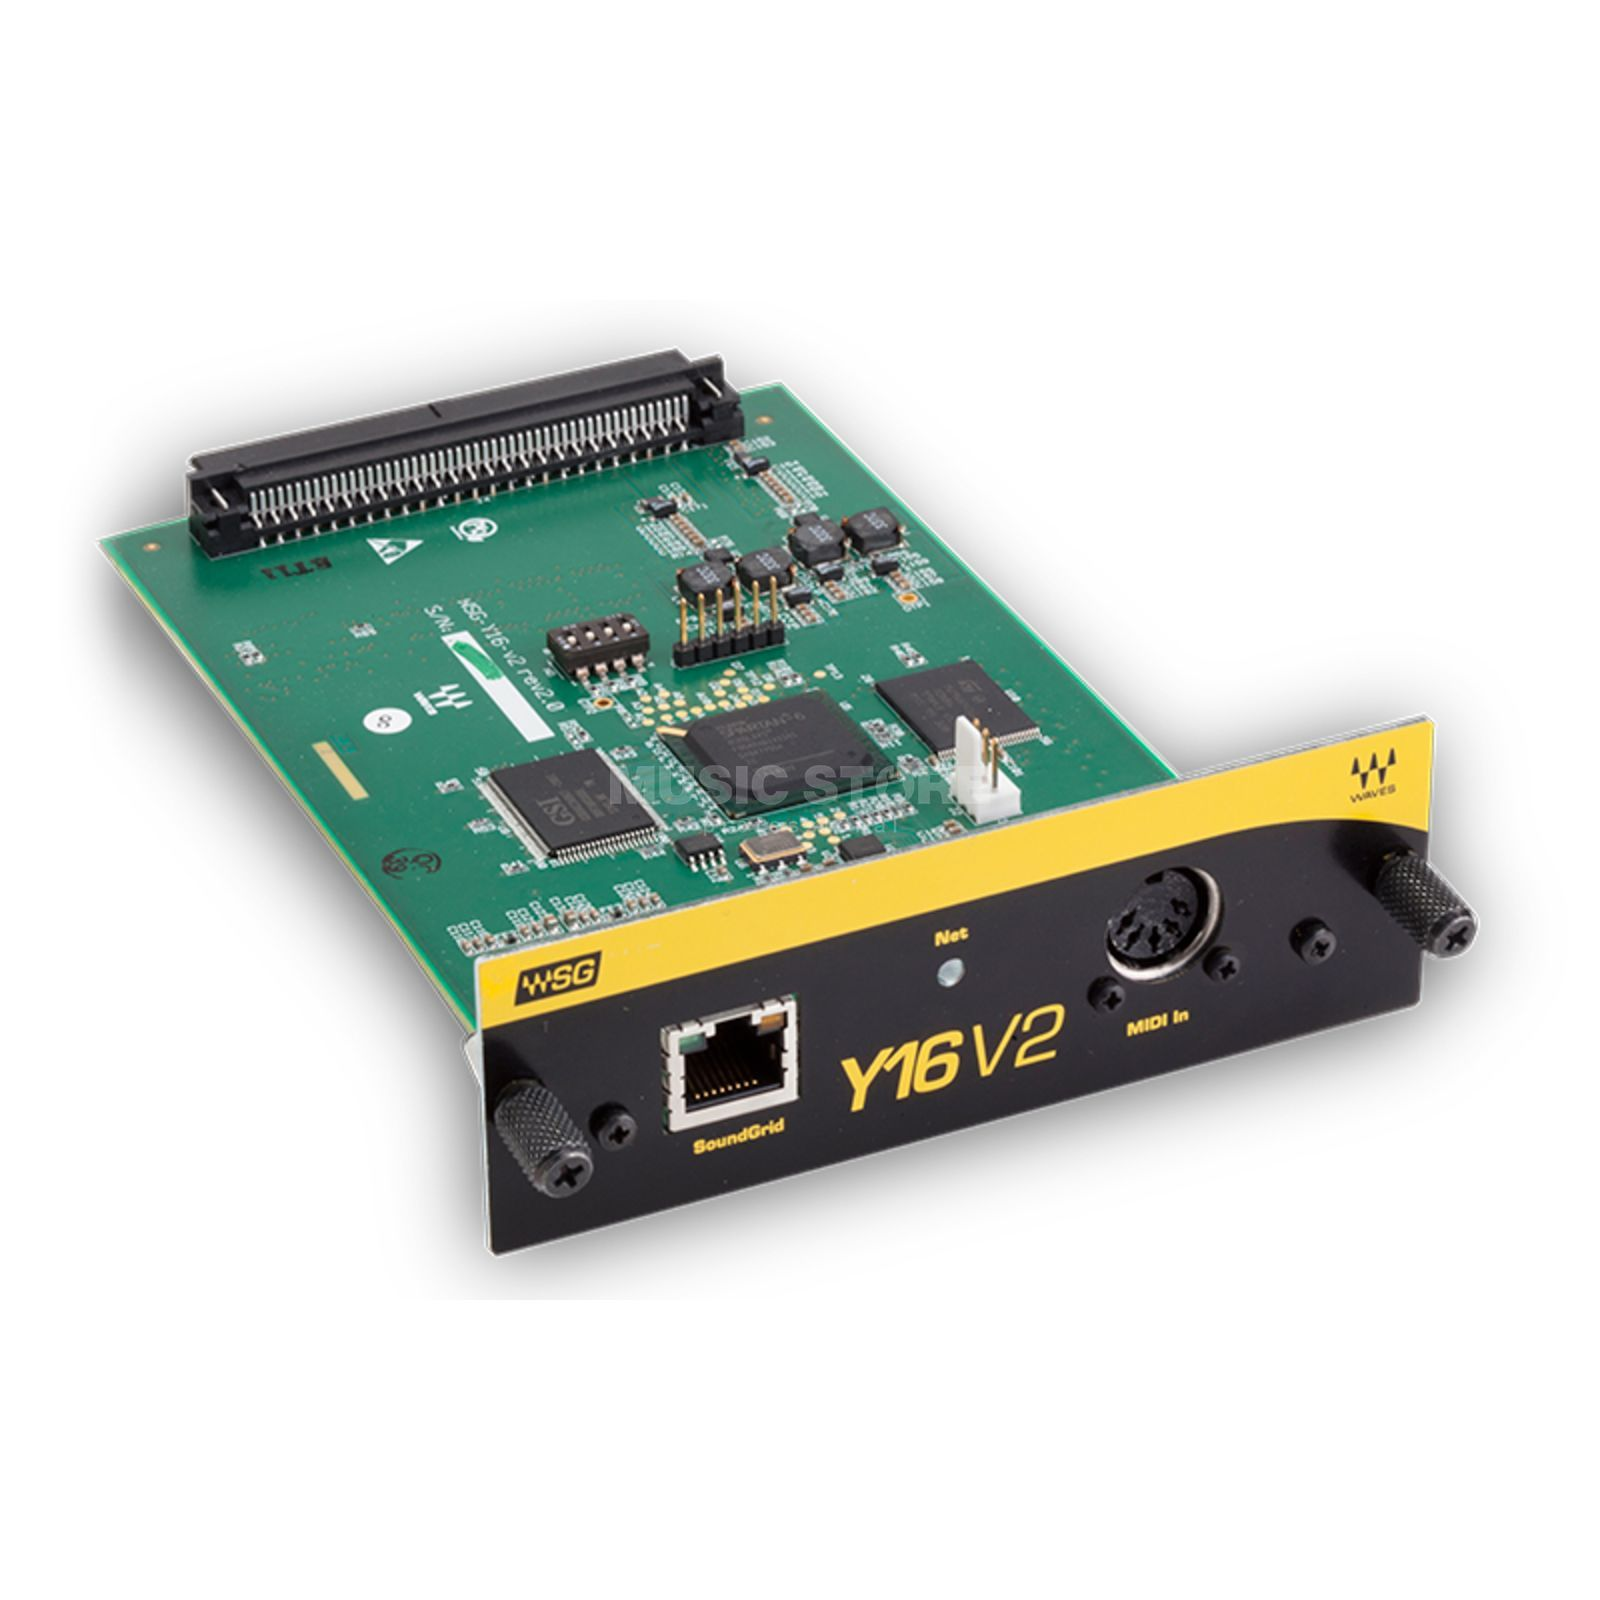 Waves WSG-Y16 Karte SoundGrid Card Yamaha Produktbild